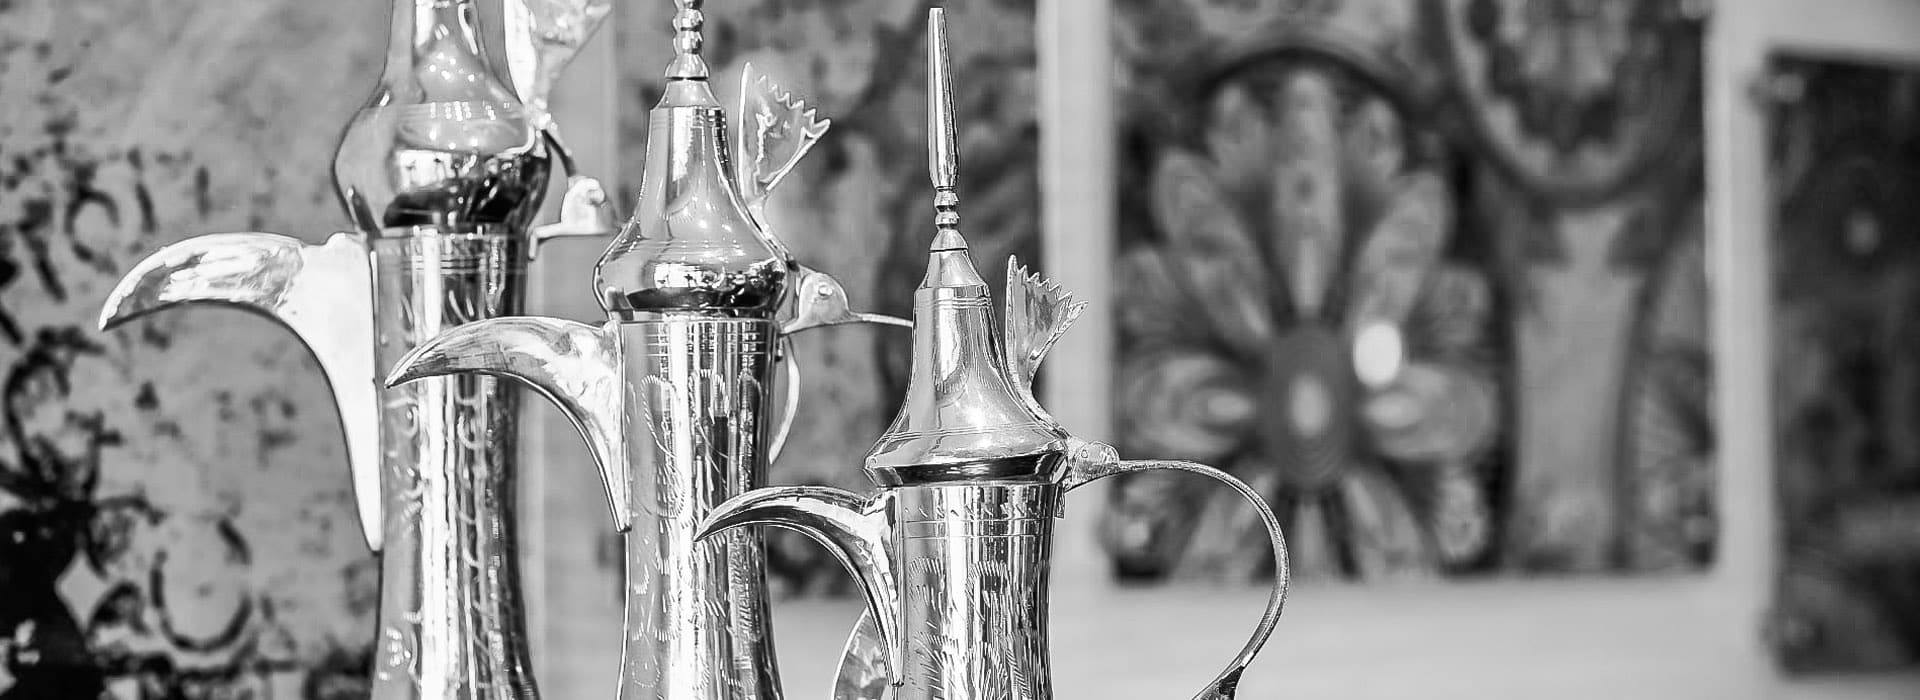 Dubai hotels near Airport with silver pots